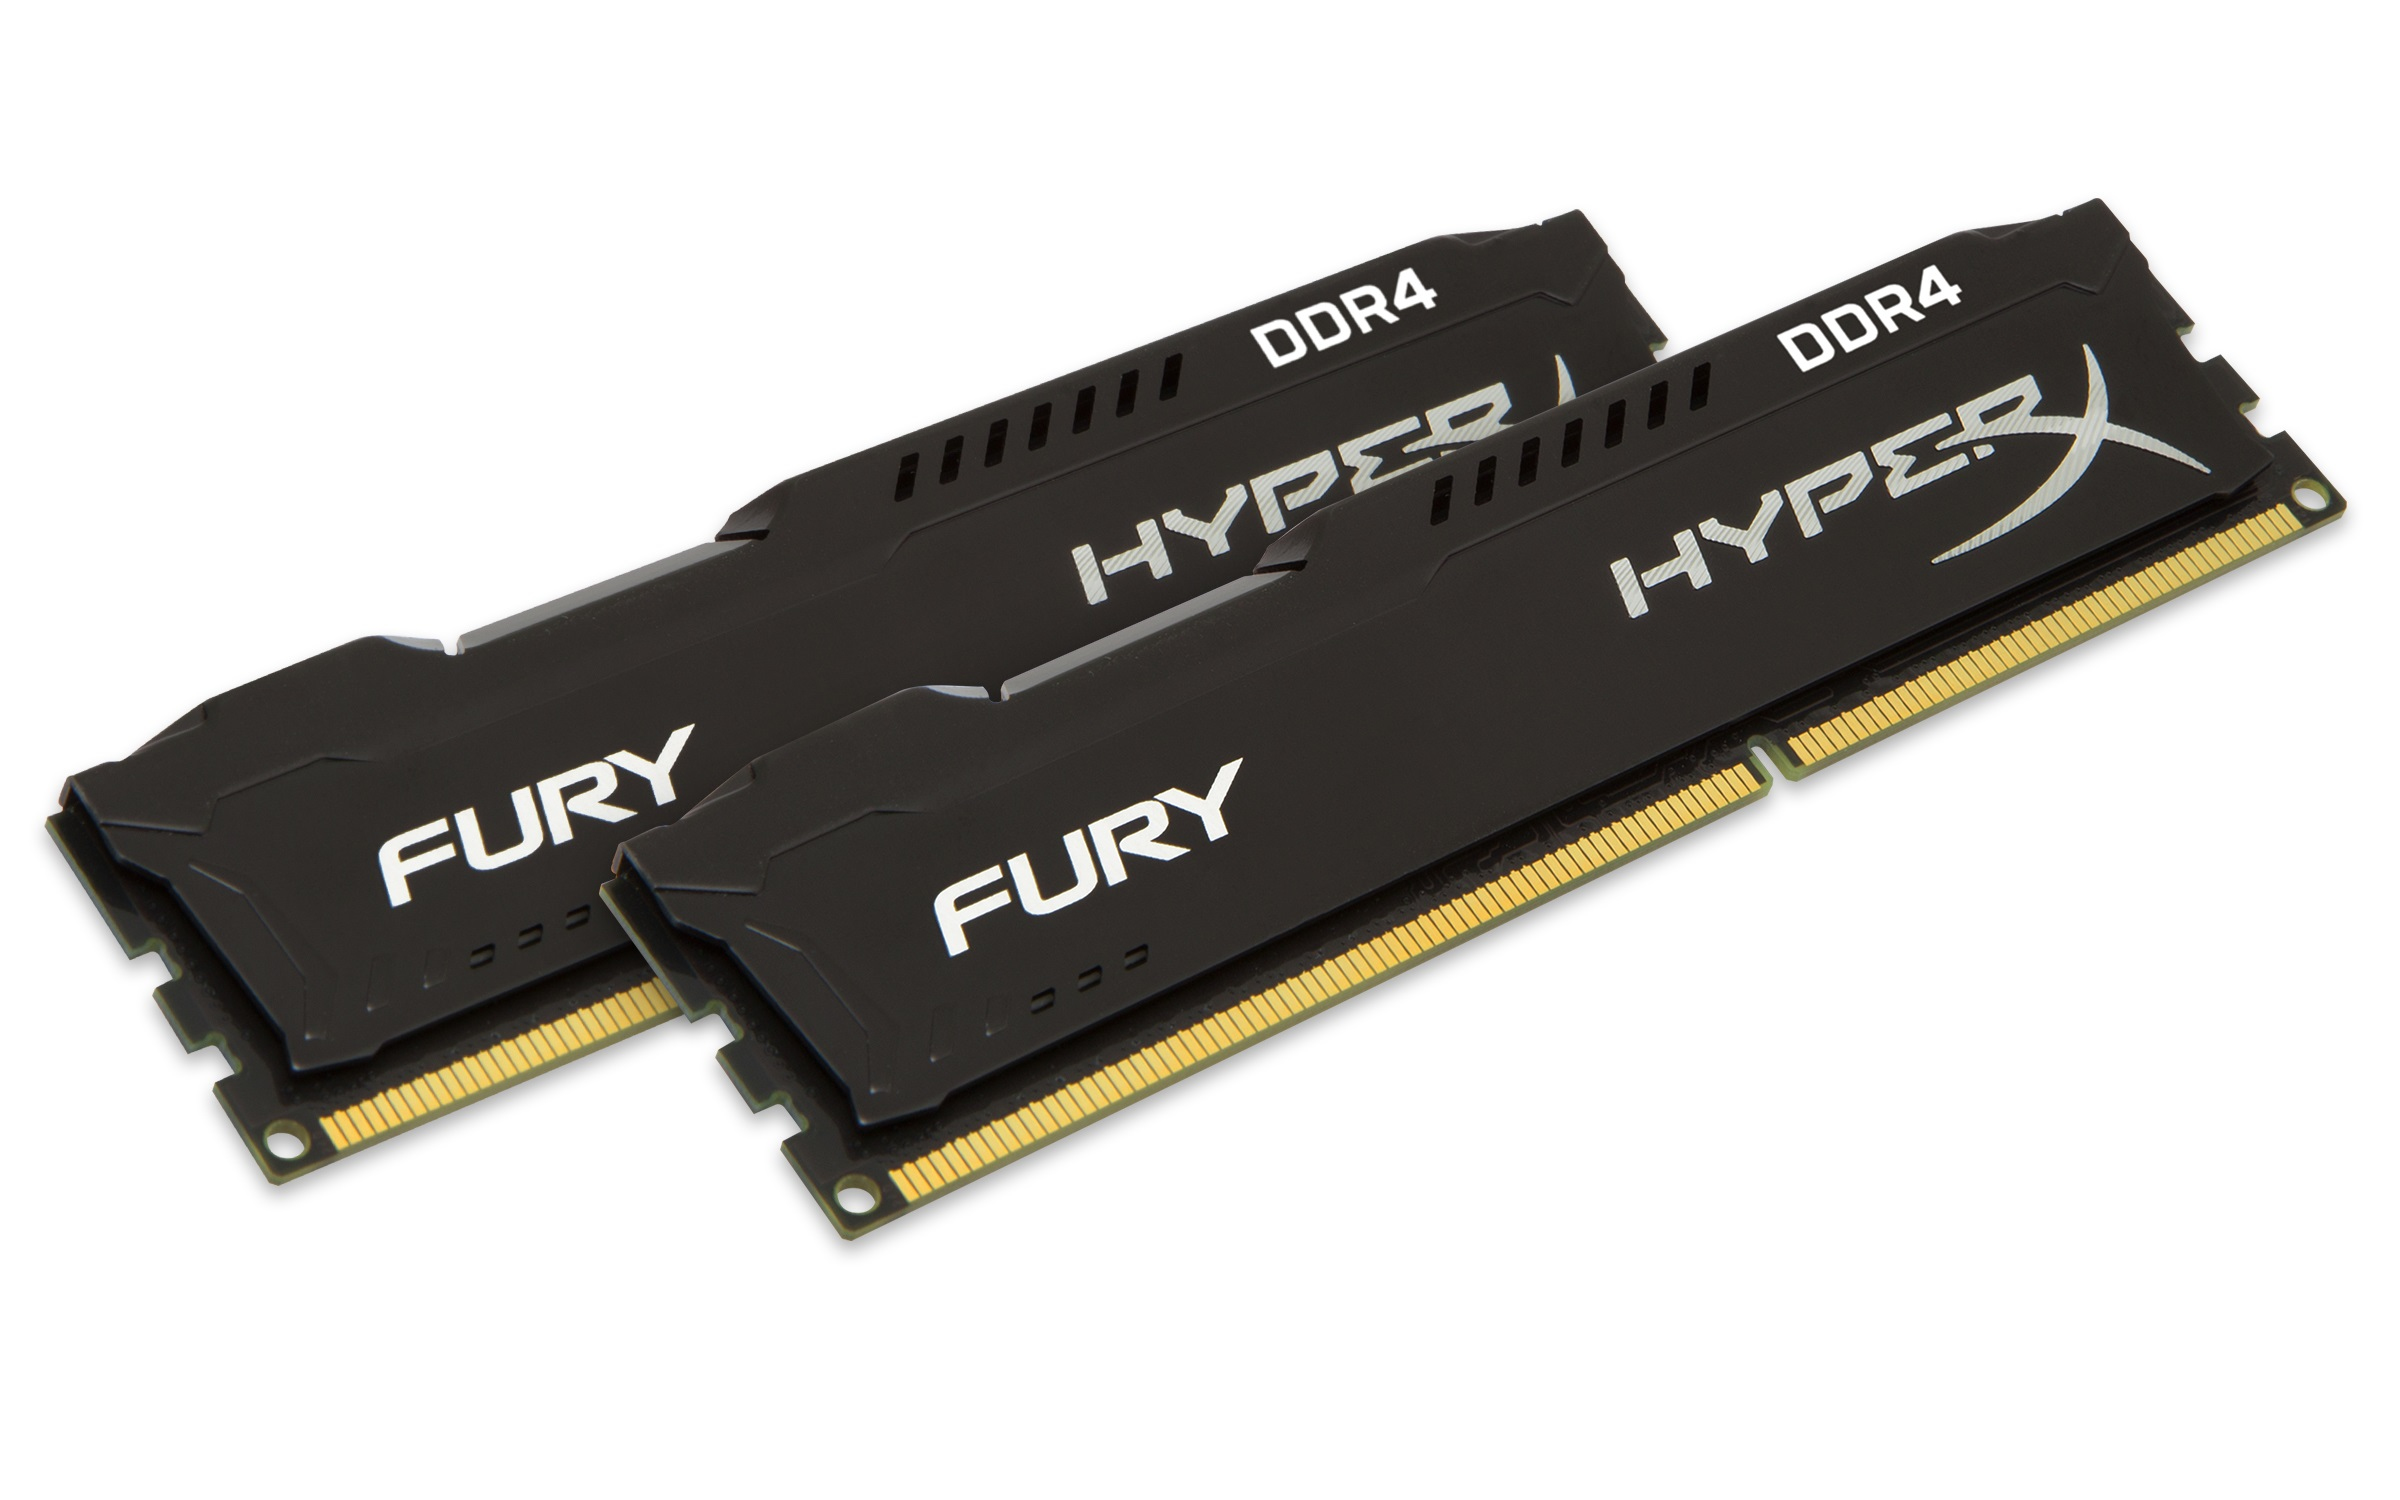 HyperX FURY Memory Black 8GB DDR4 2400MHz Kit 8GB DDR4 2400MHz memory module